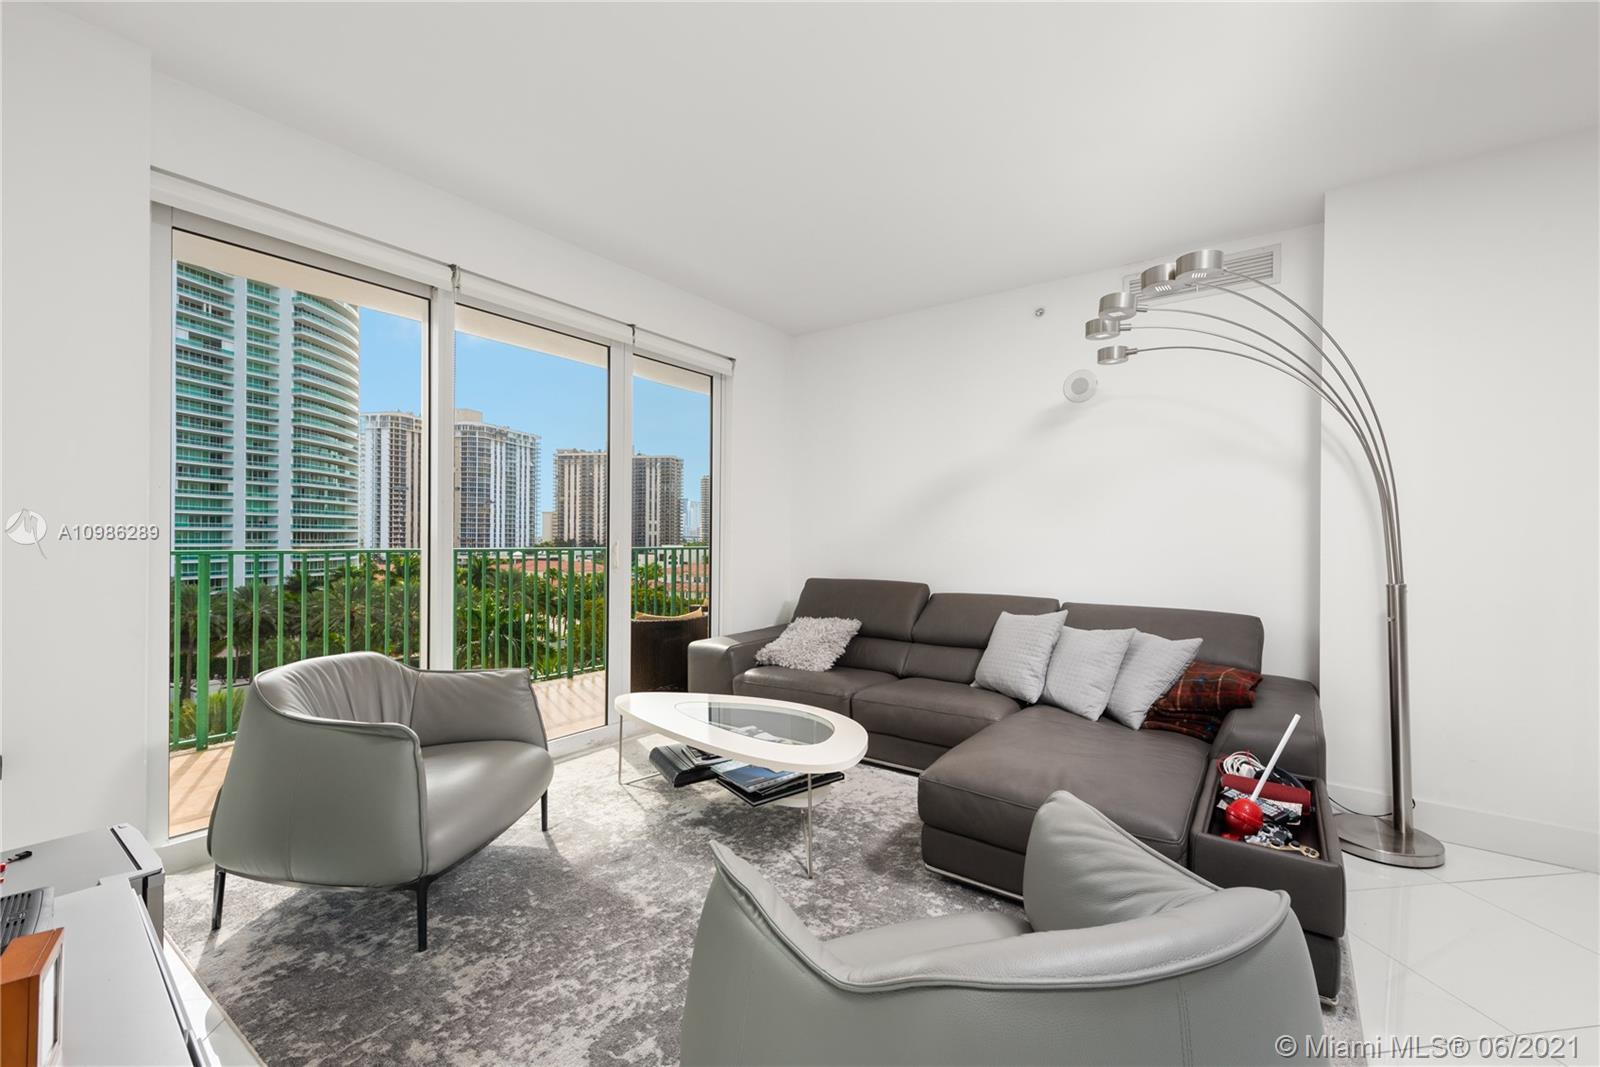 Enjoy luxury living at its finest in this beautiful unit at Turnberry Village, located within the wo